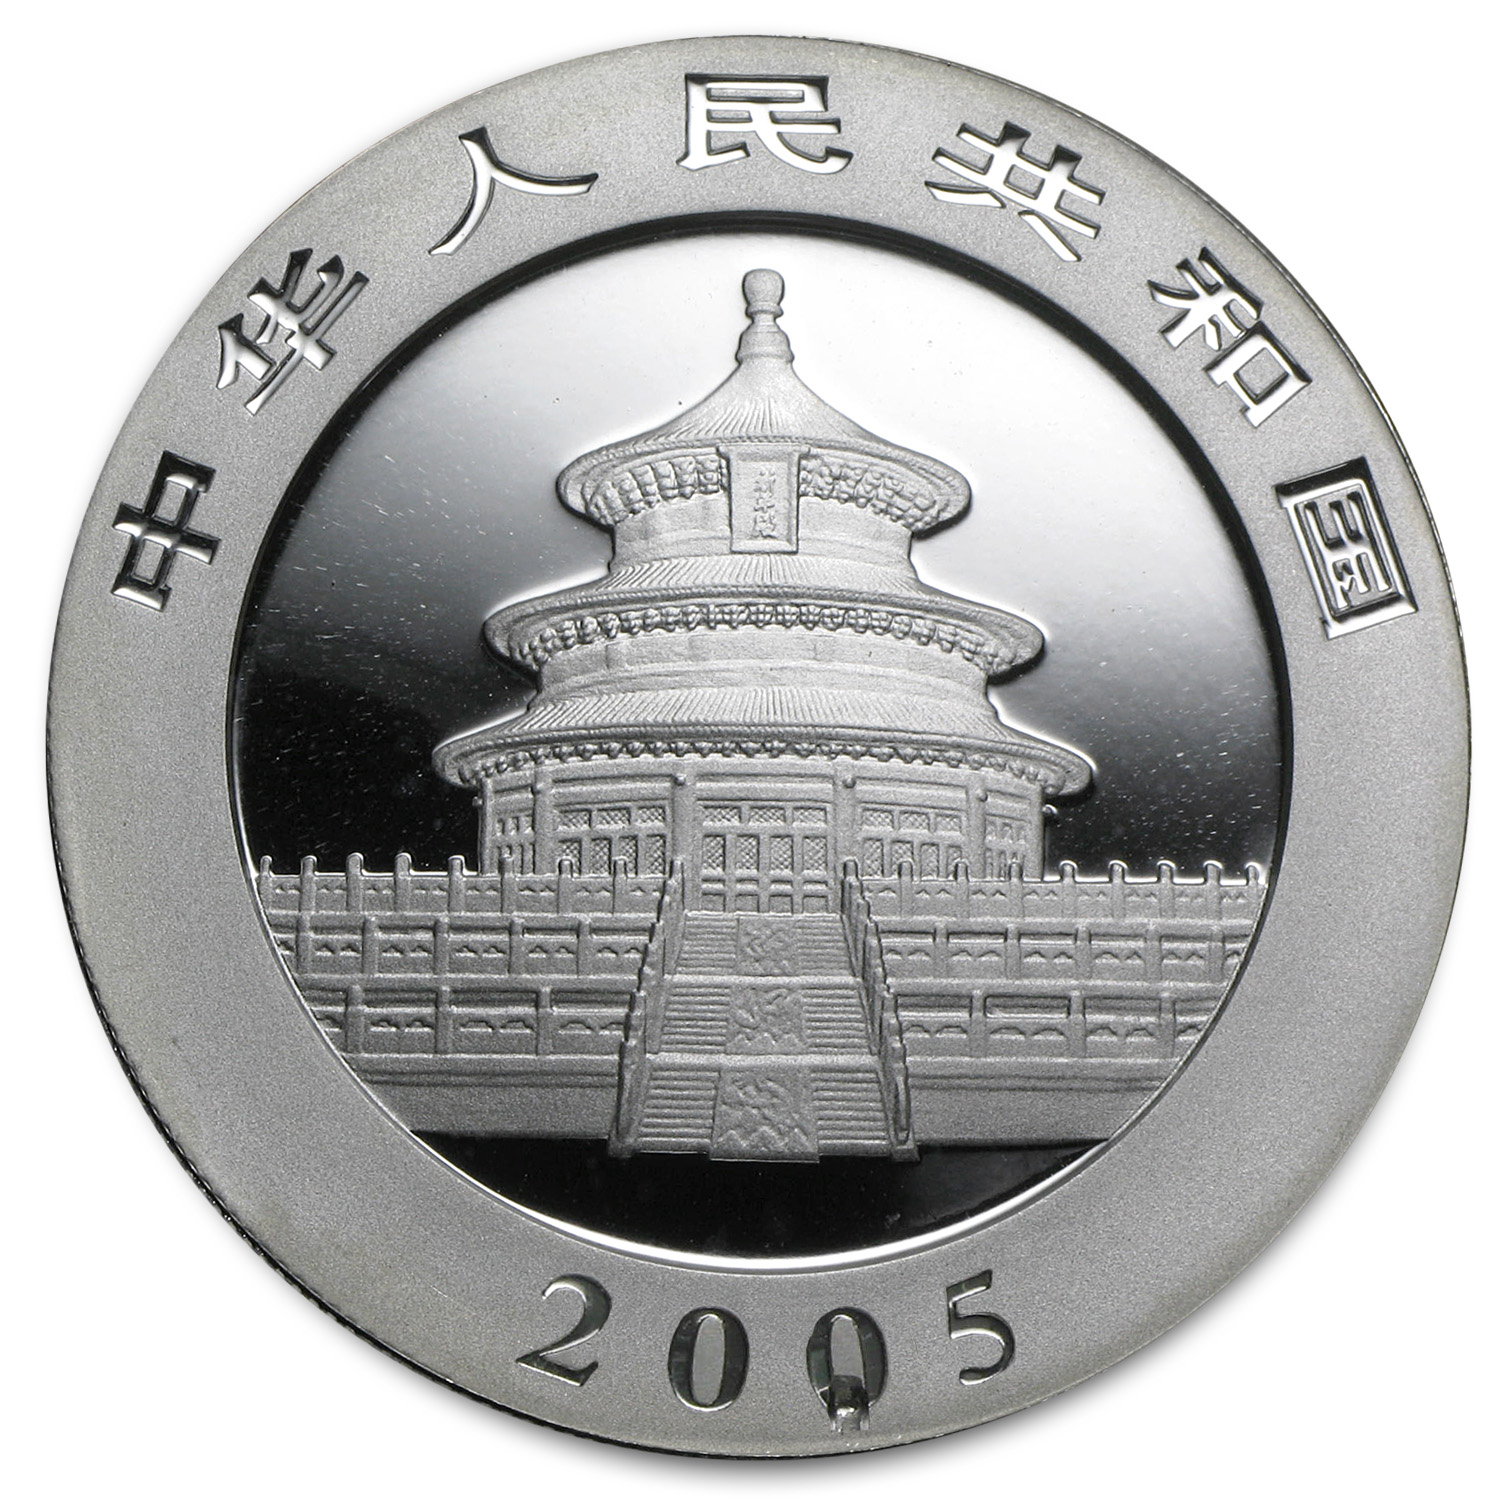 2005 China 1 oz Silver Panda BU (Sealed)